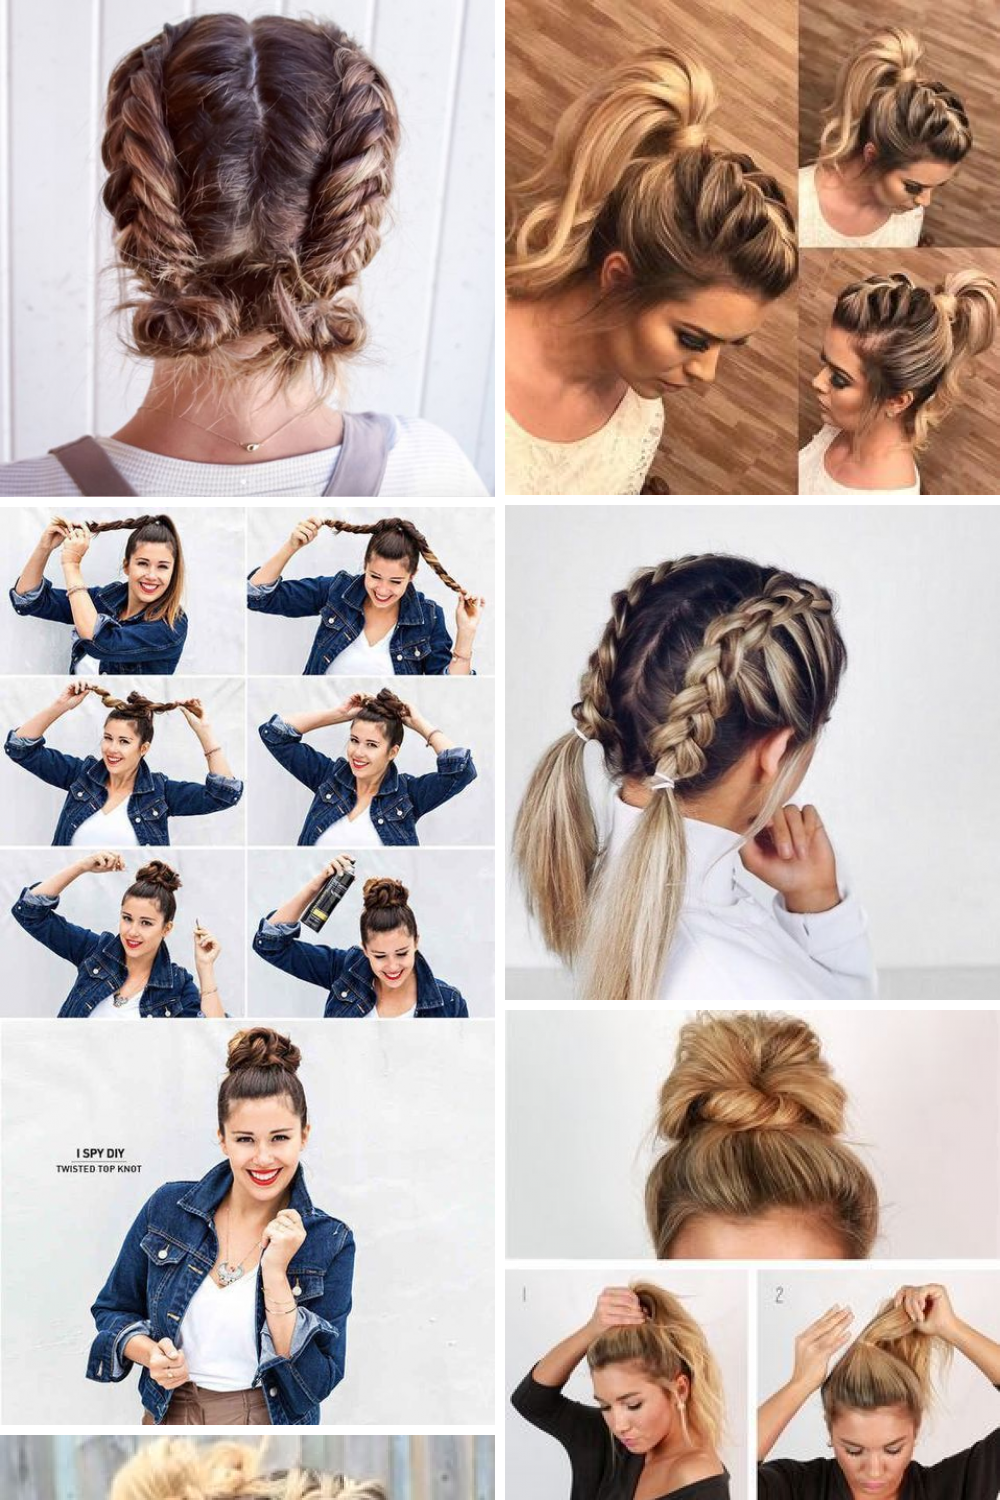 30 Cute Easy Hairstyles Updo Pictures Designs Ideas Easy Hairstyles Casual Updos For Medium Hair Girls Hairstyles Easy